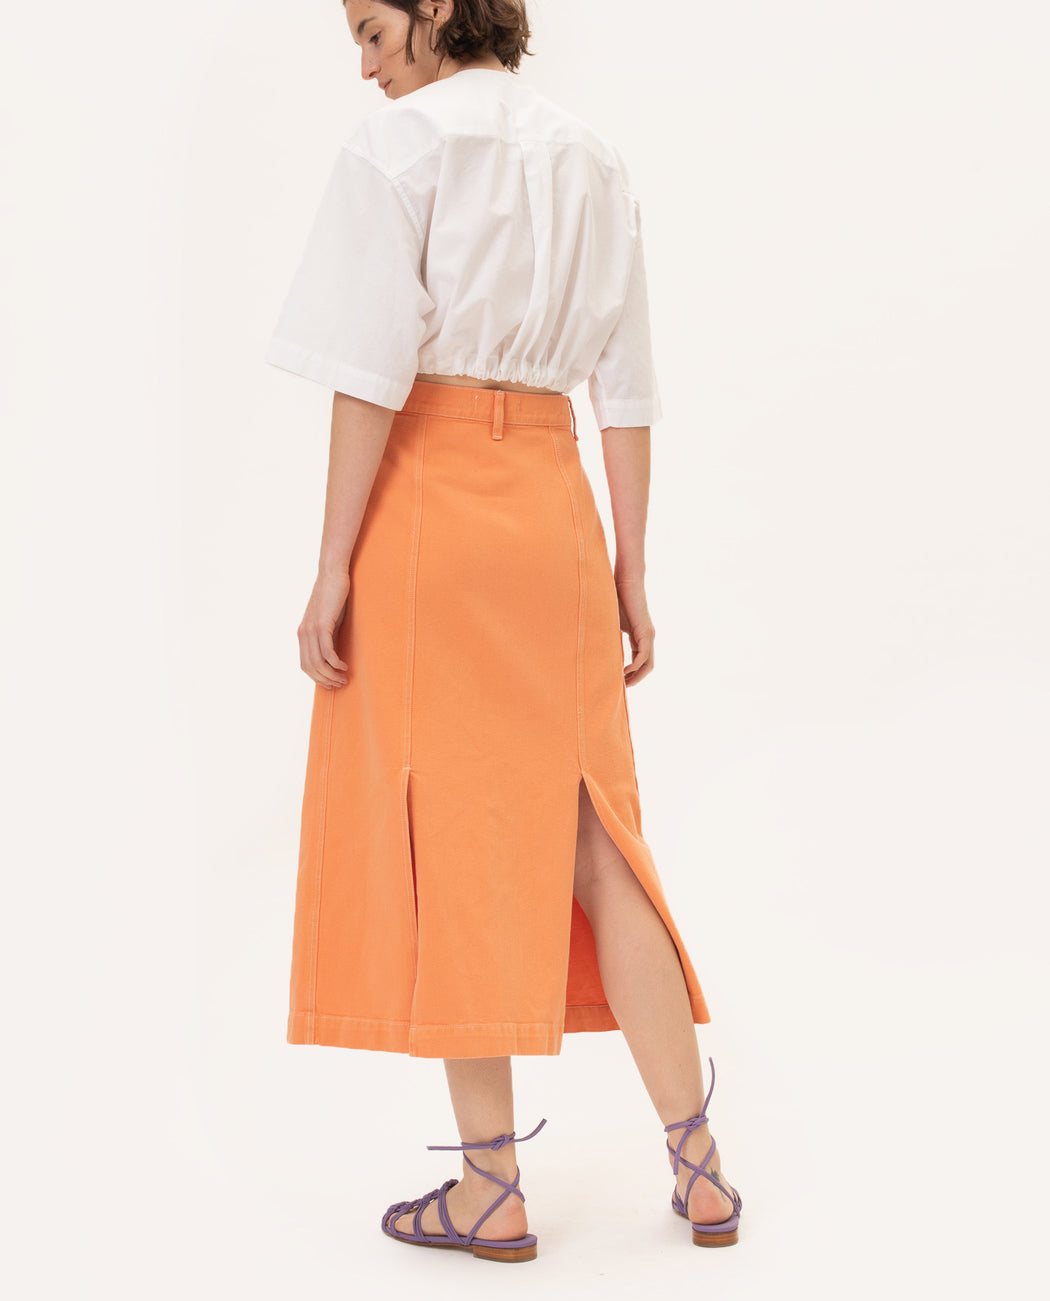 Mundaka Skirt Andrea Skirt Orange Spain Netherlands Europe